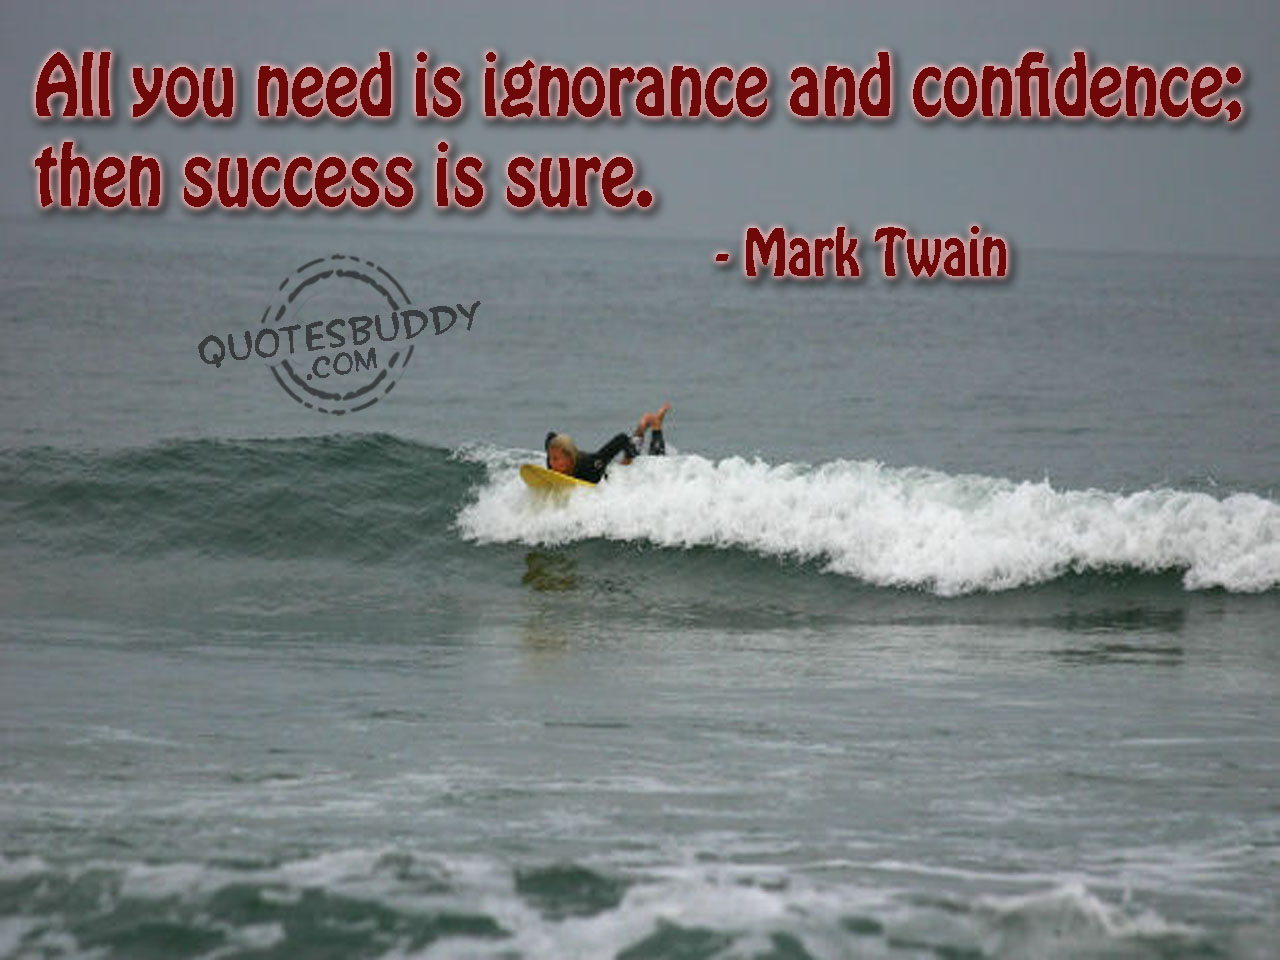 All You Need Is Ignorance and Confidence then success is Sure ~ Confidence Quote